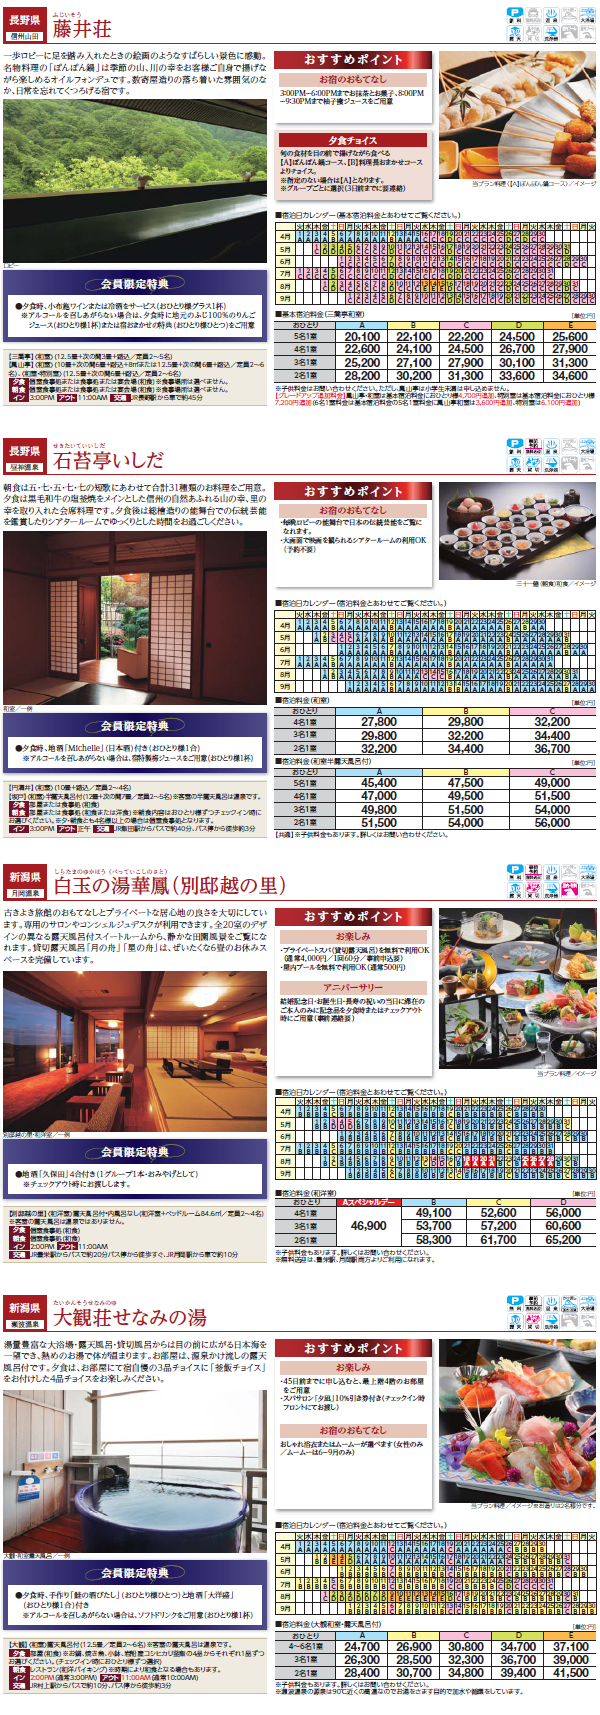 stay_plan_ryokan_1403_13